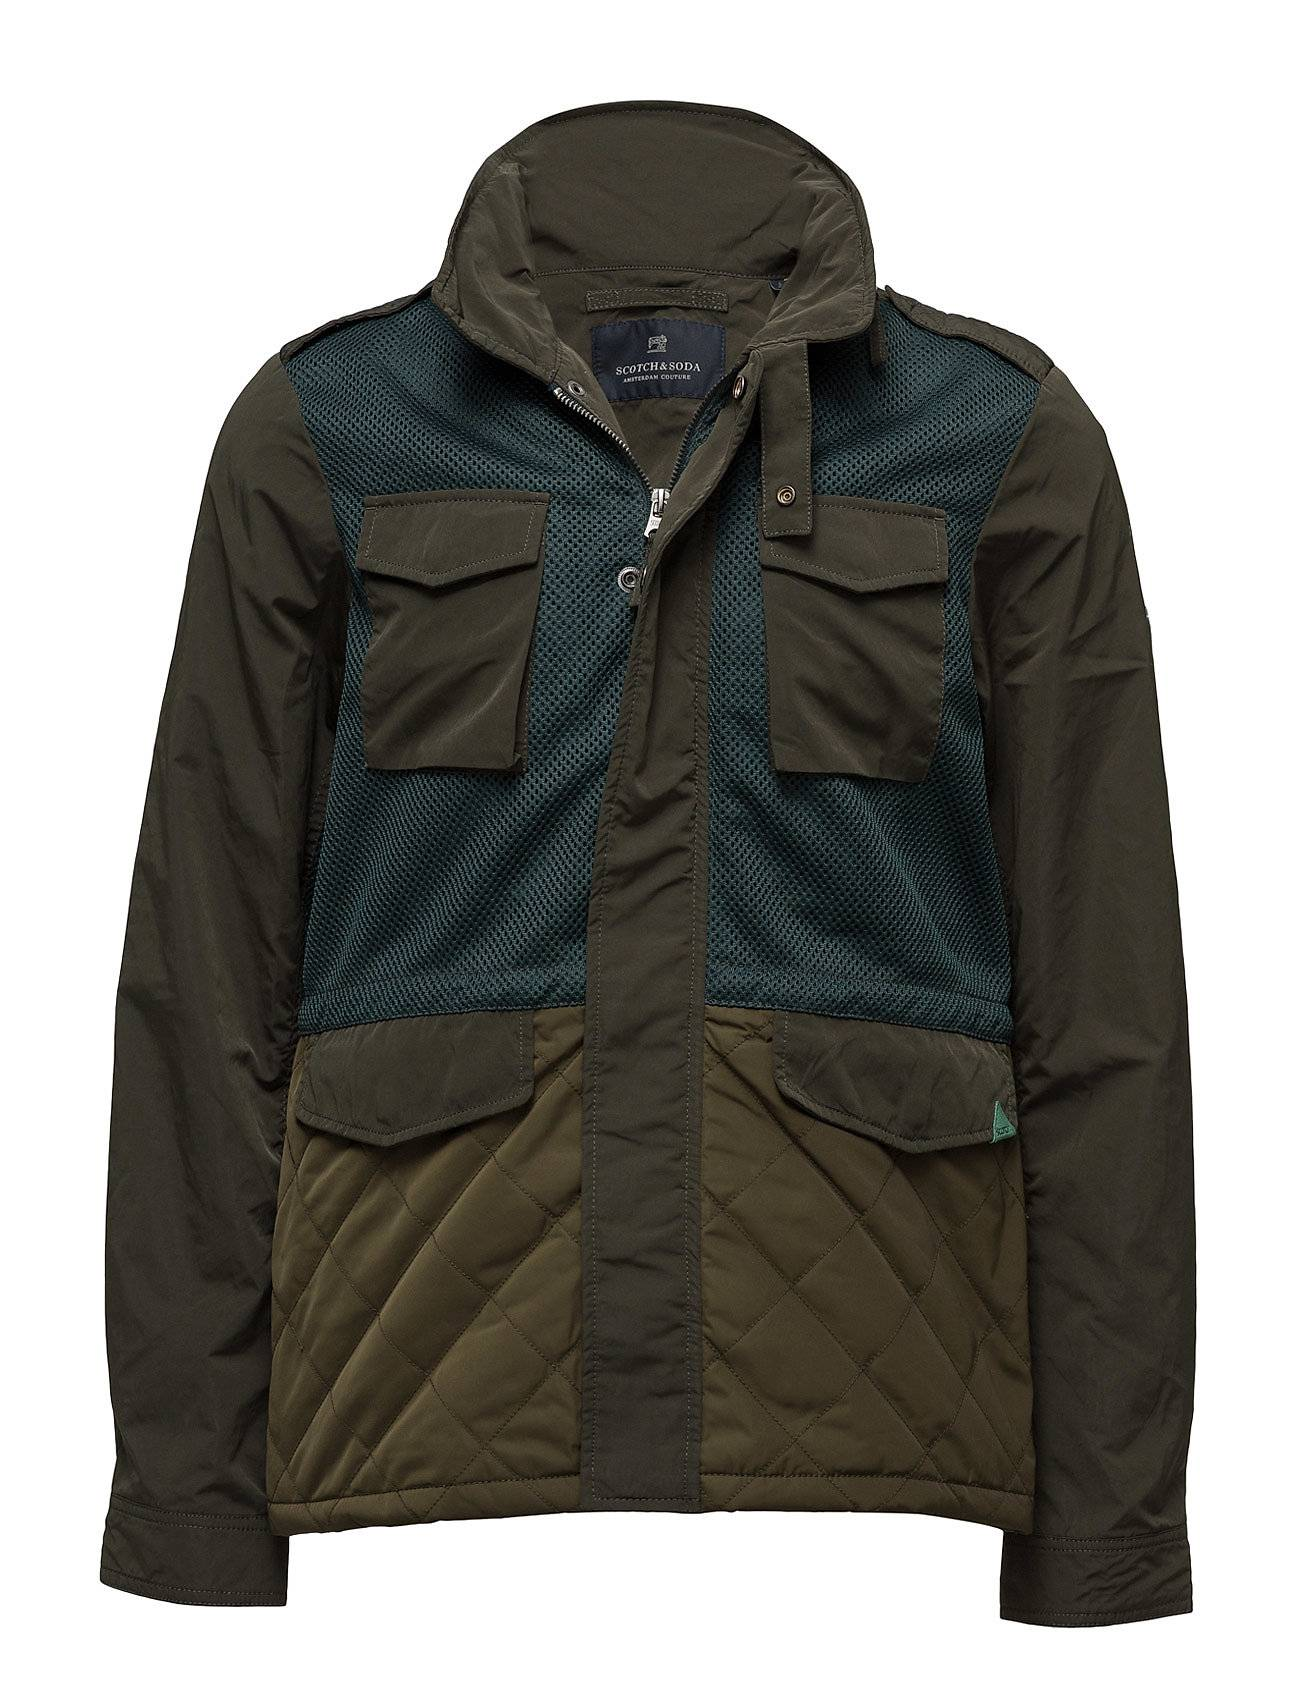 Scotch & Soda Jacket In Mix & Match Polyester/ Nylon With Military